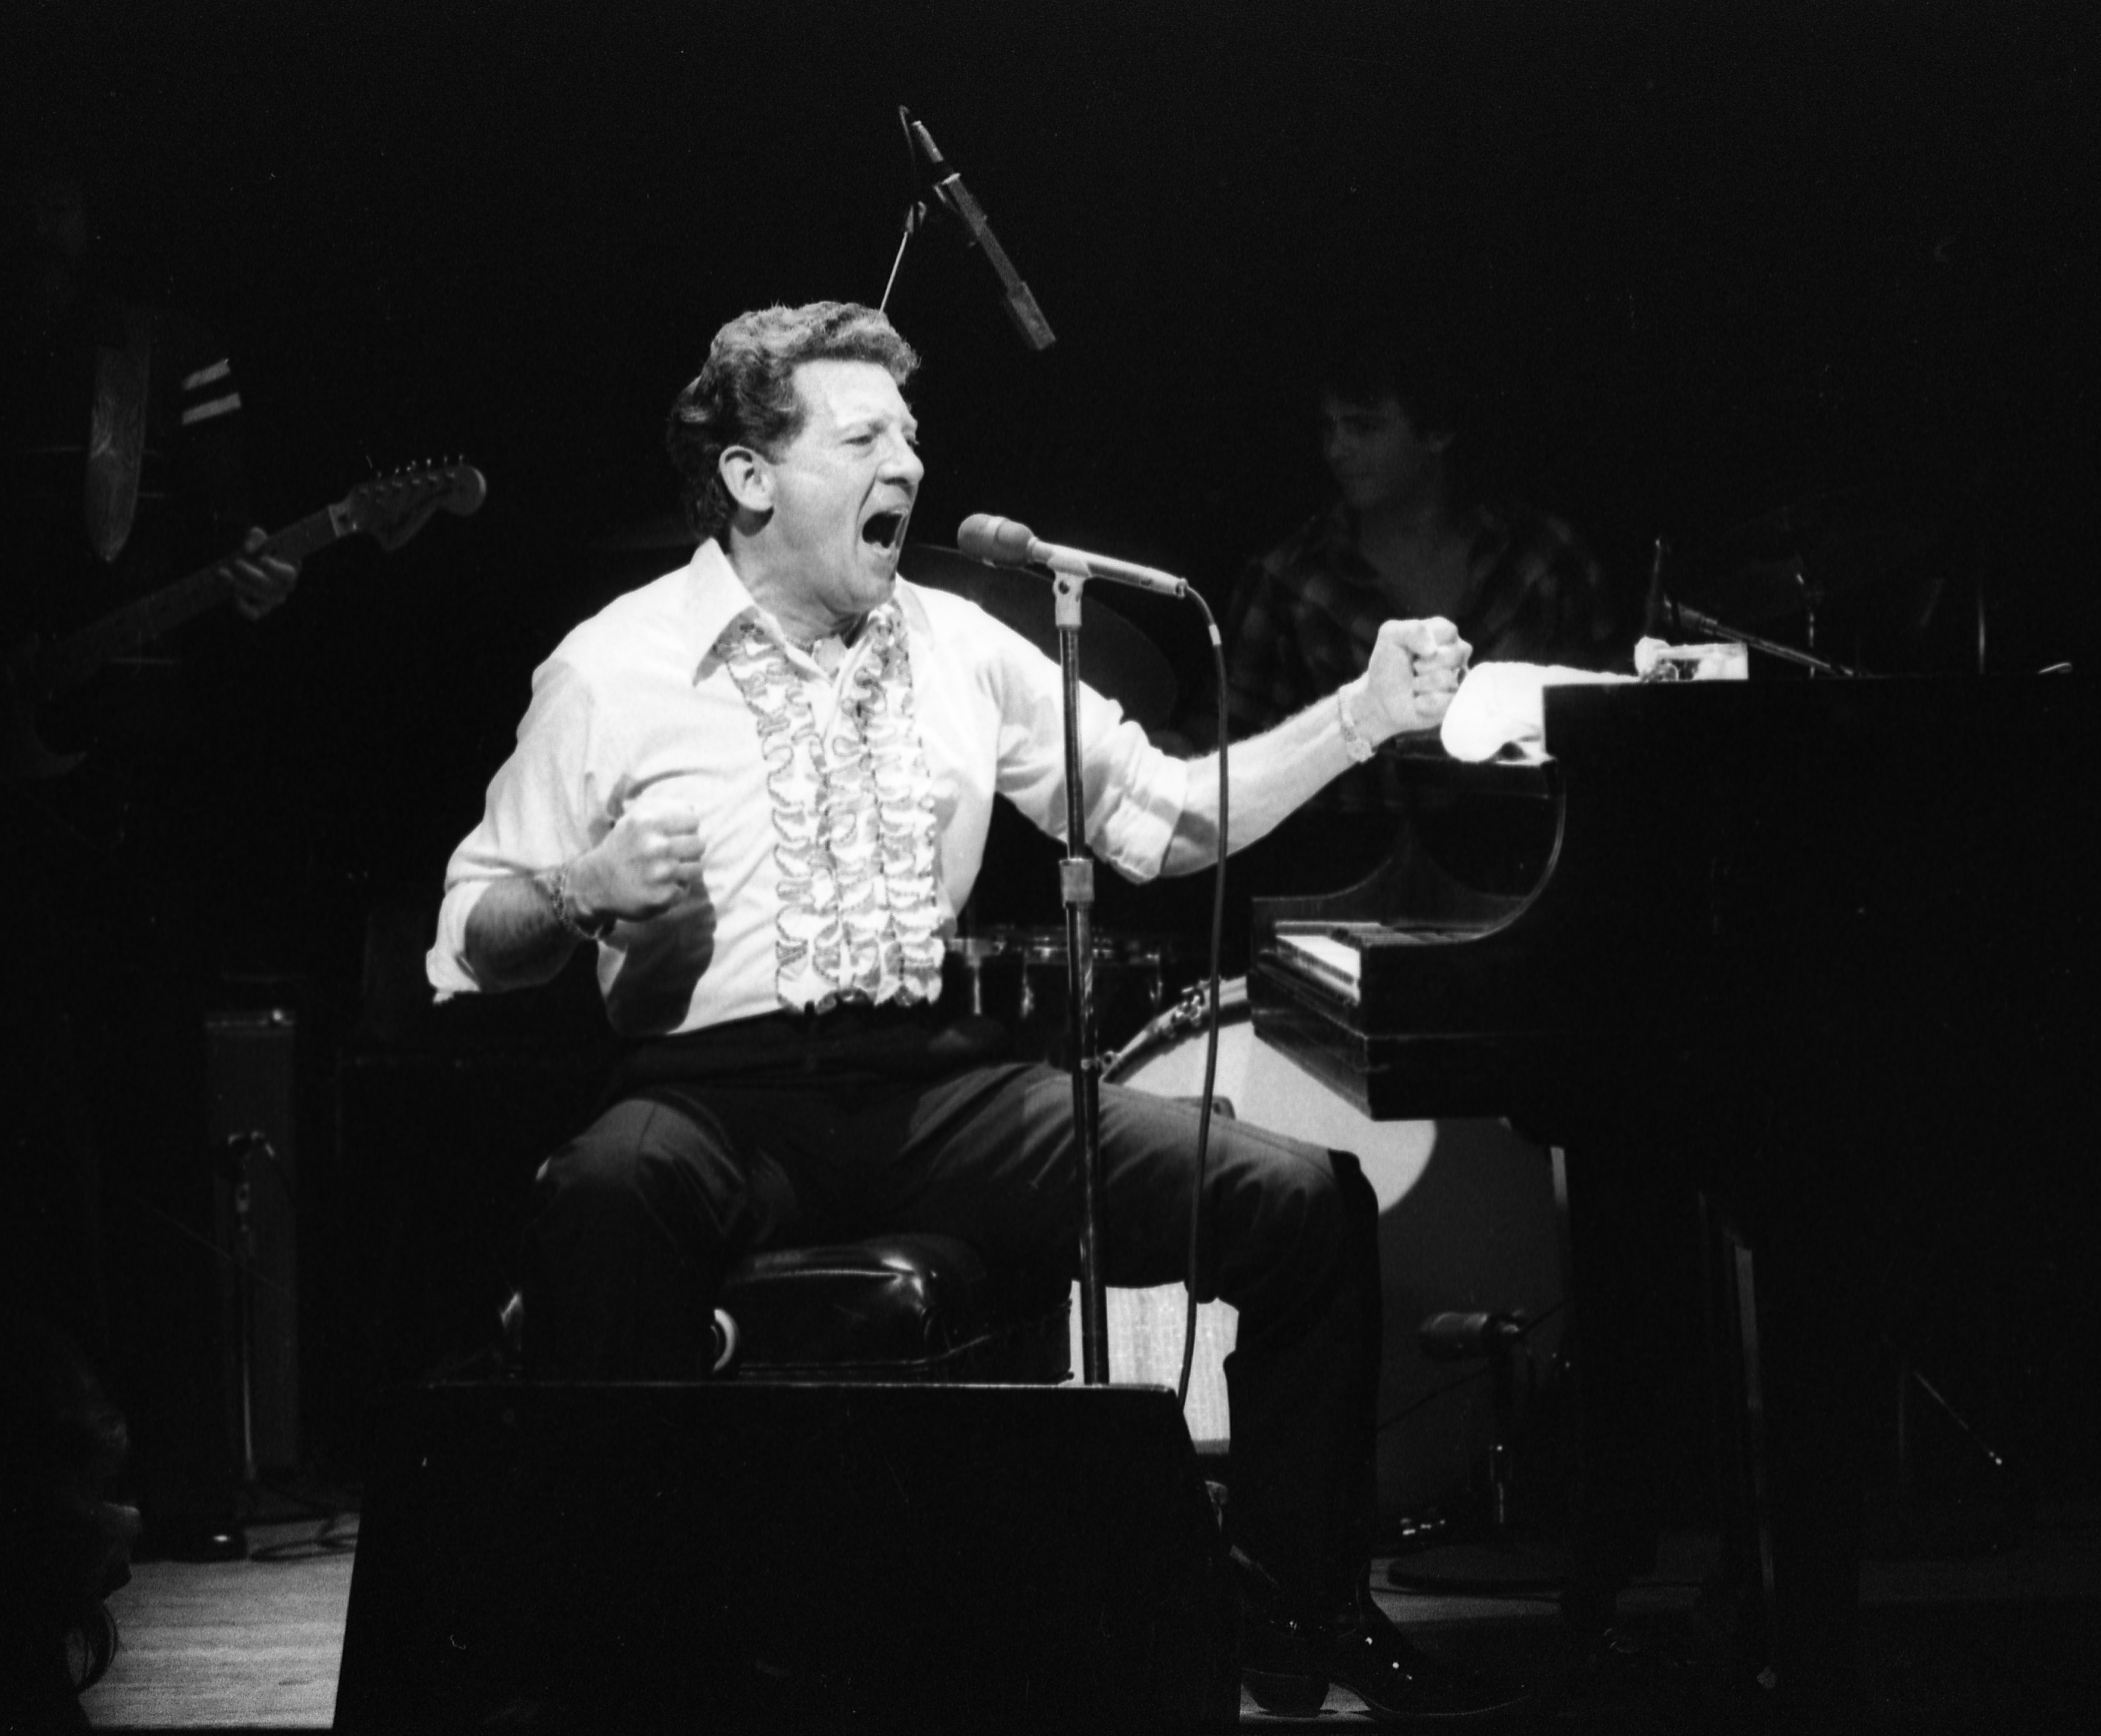 Jerry Lee Lewis Performs At The Second Chance Club, February 3, 1981 image